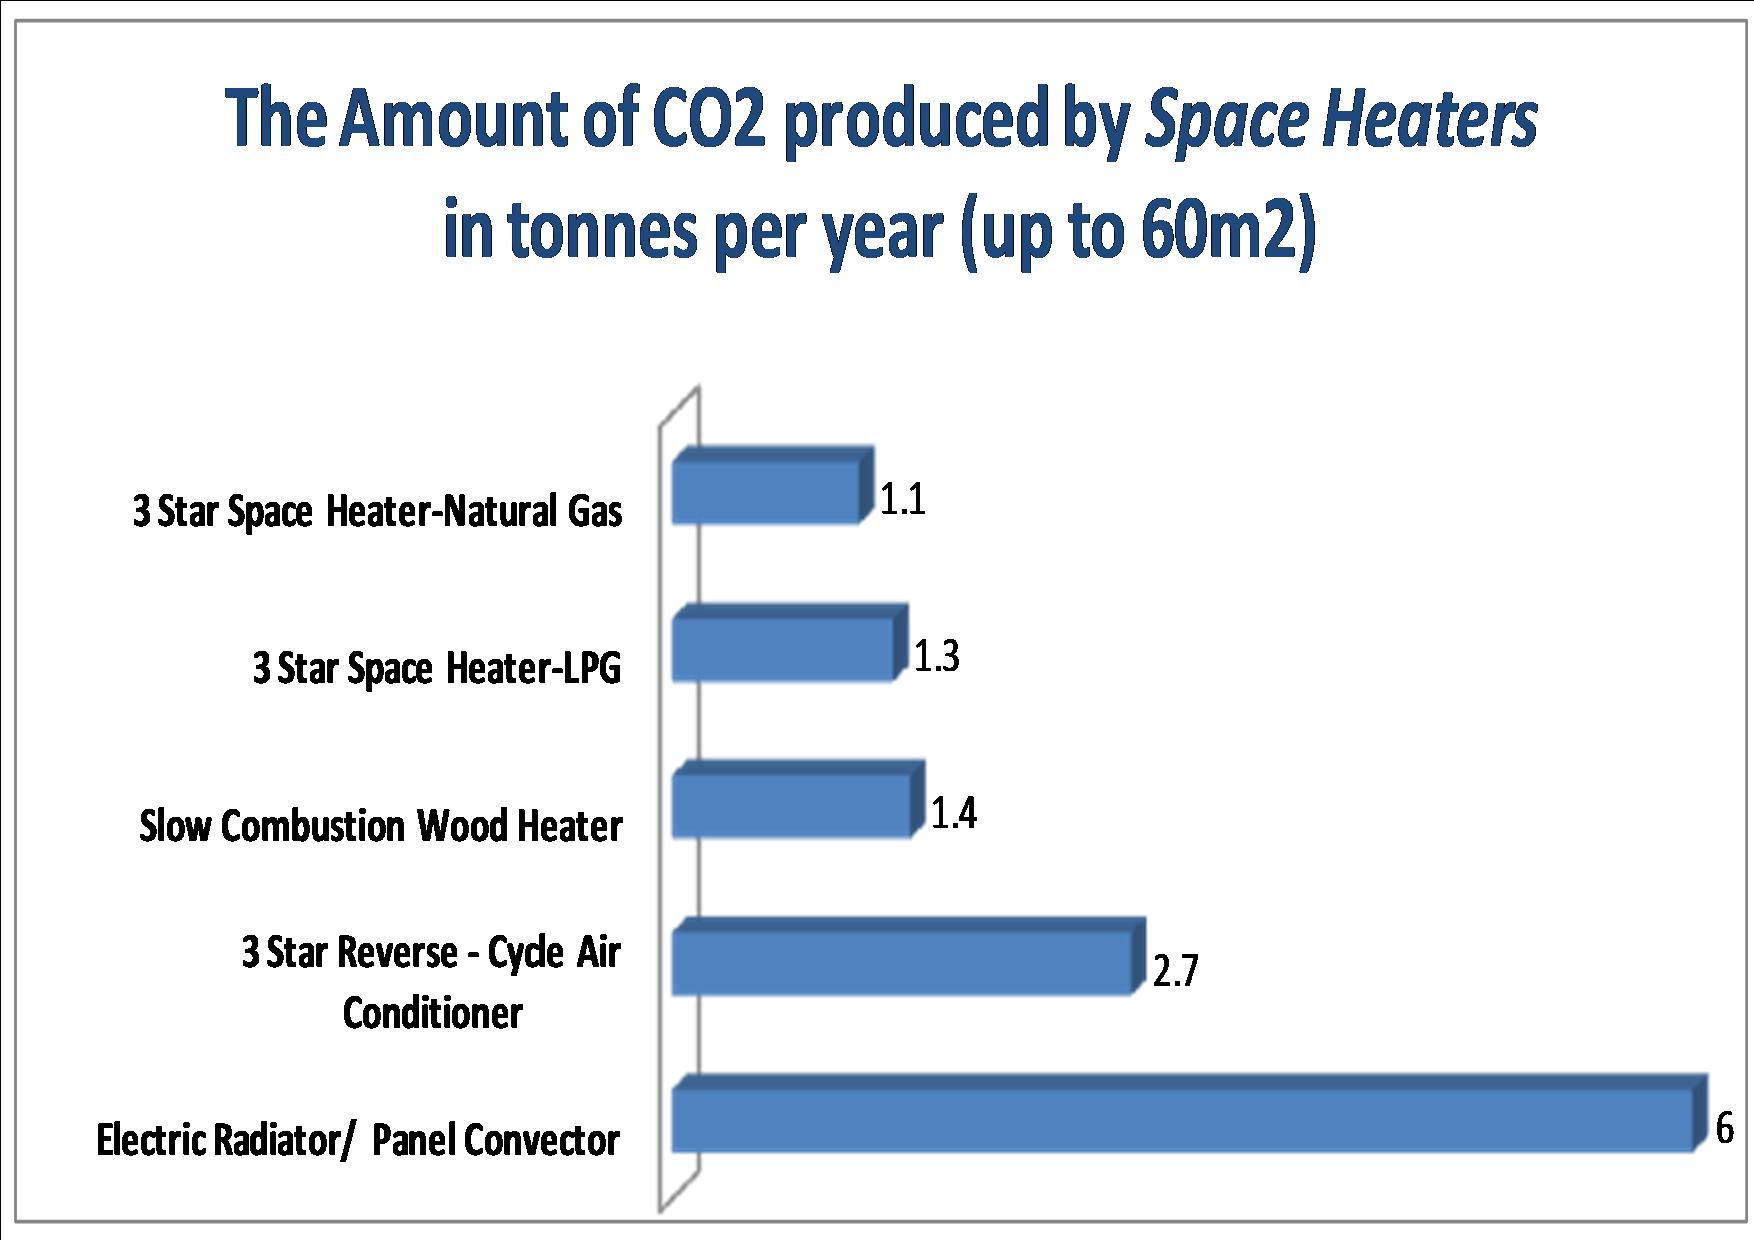 co2 of spACE HEATERS